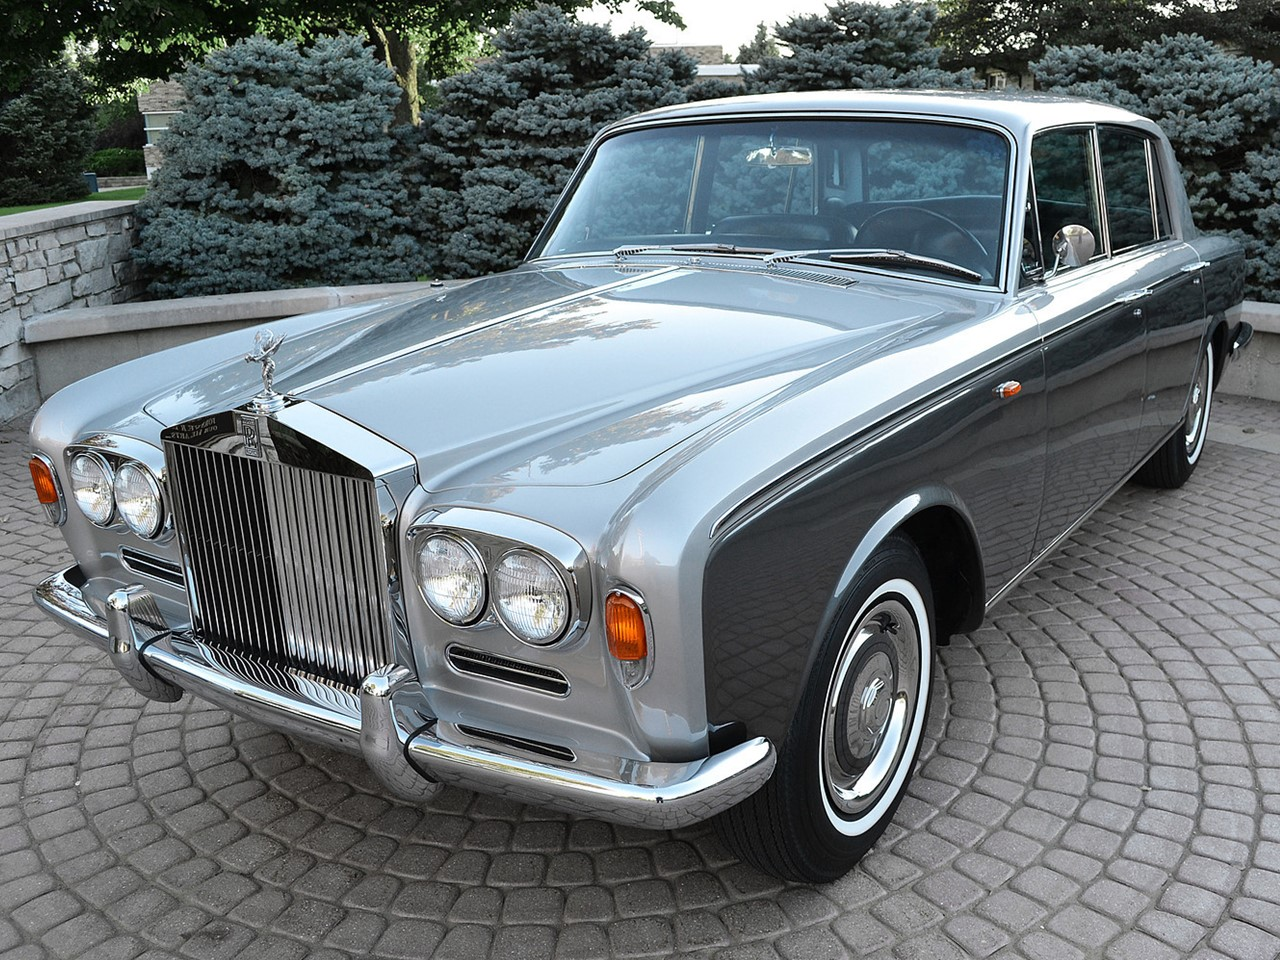 1967 Rolls Royce Silver Shadow LWB | NotoriousLuxury